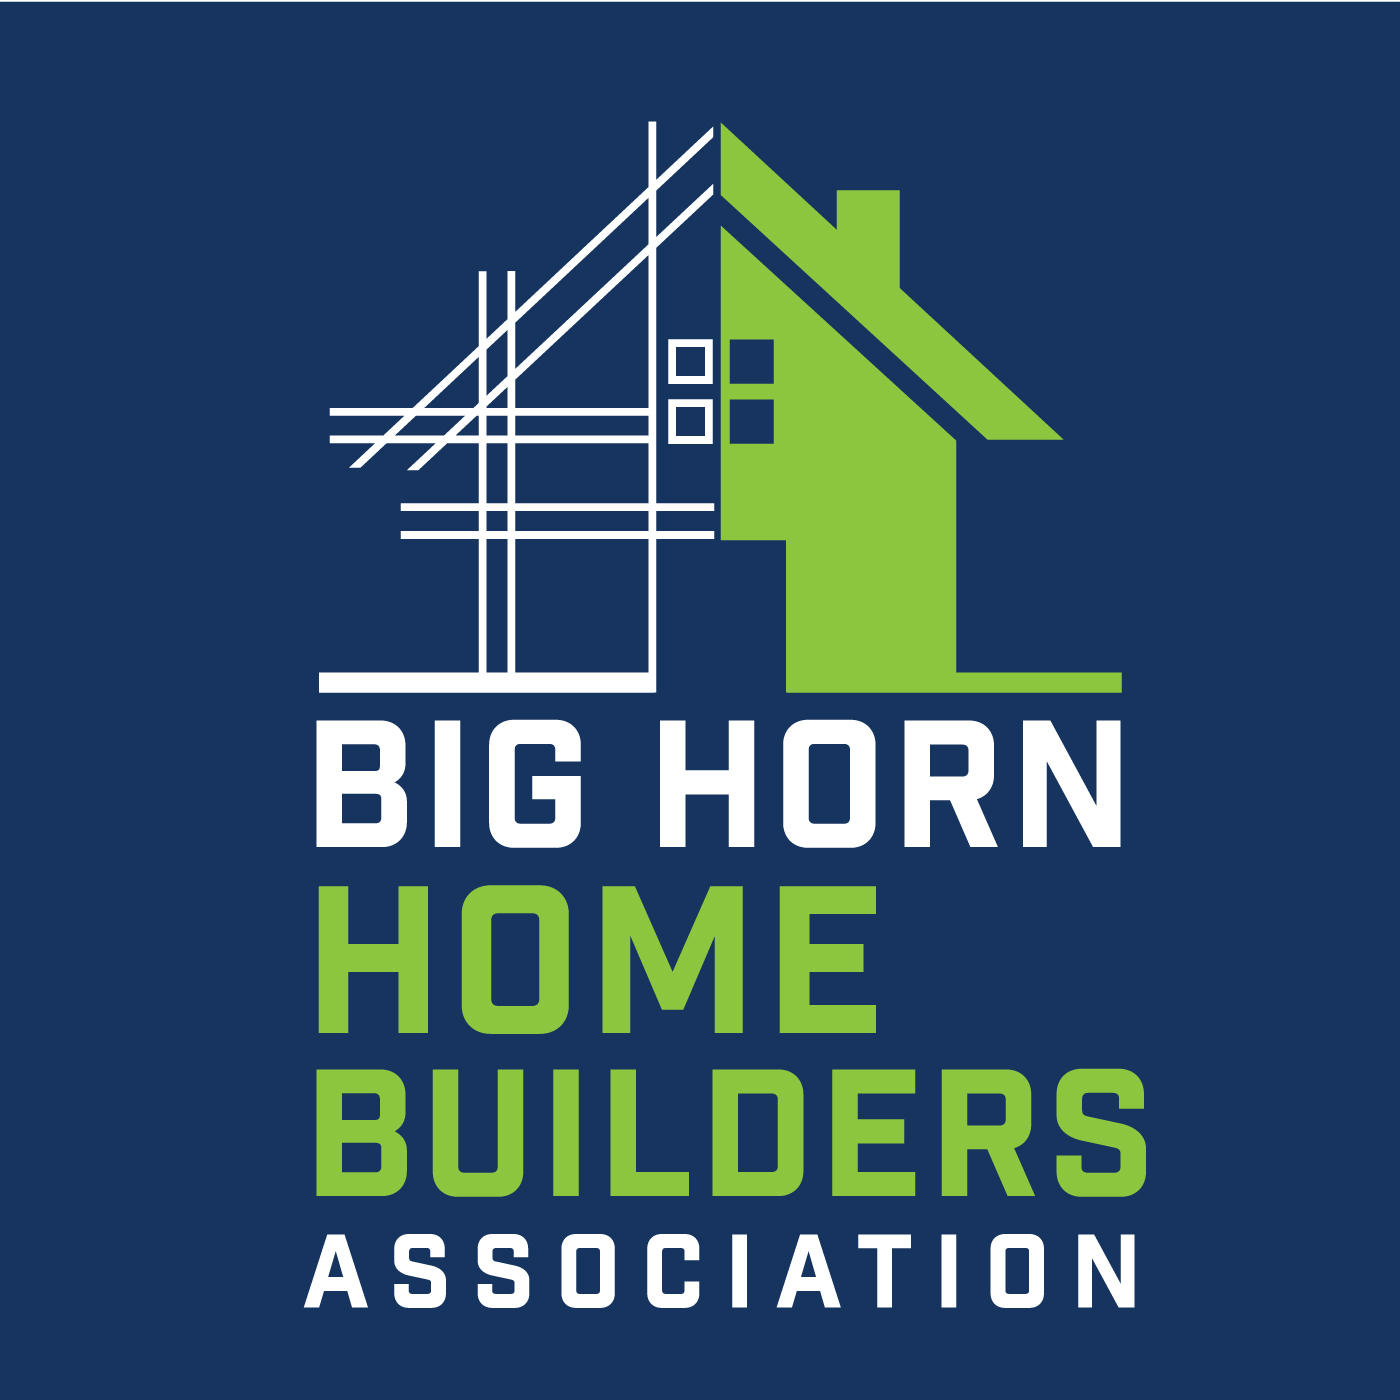 big horn homebuilders association logo and web design